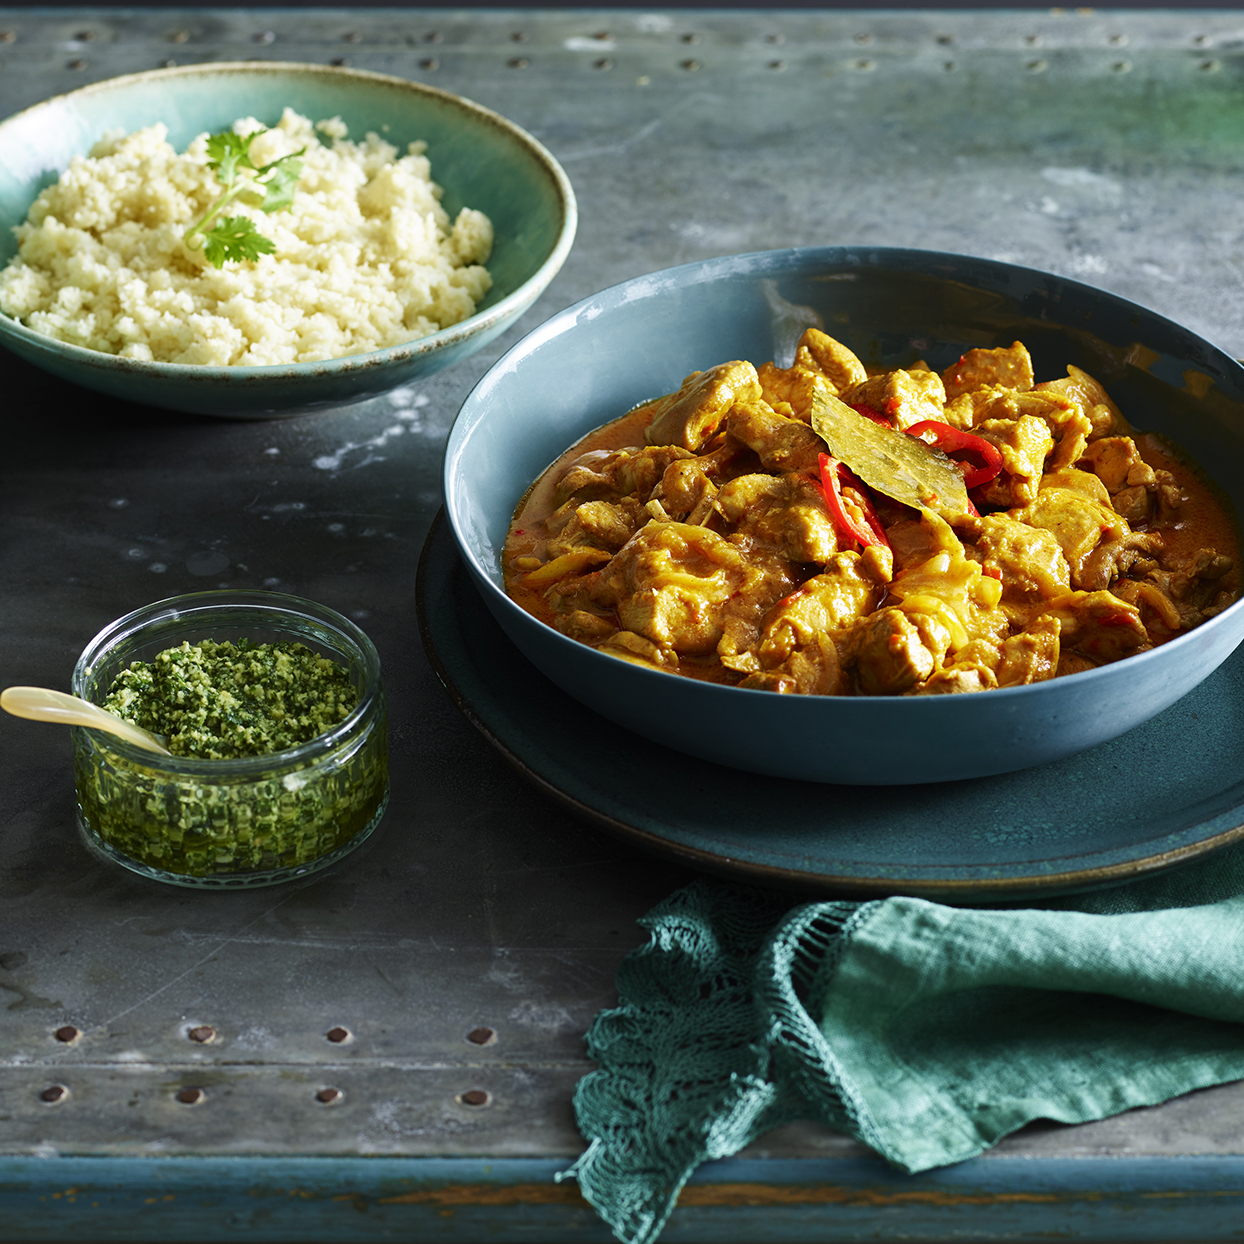 Love Indian food? If you're watching your weight, you may want to steer clear of curry at restaurants. Most curry dishes are high in fat and calories (especially when they have meat), and can range between 400-600 calories per serving. (For a light dish, try making this chicken curry recipe at home instead).